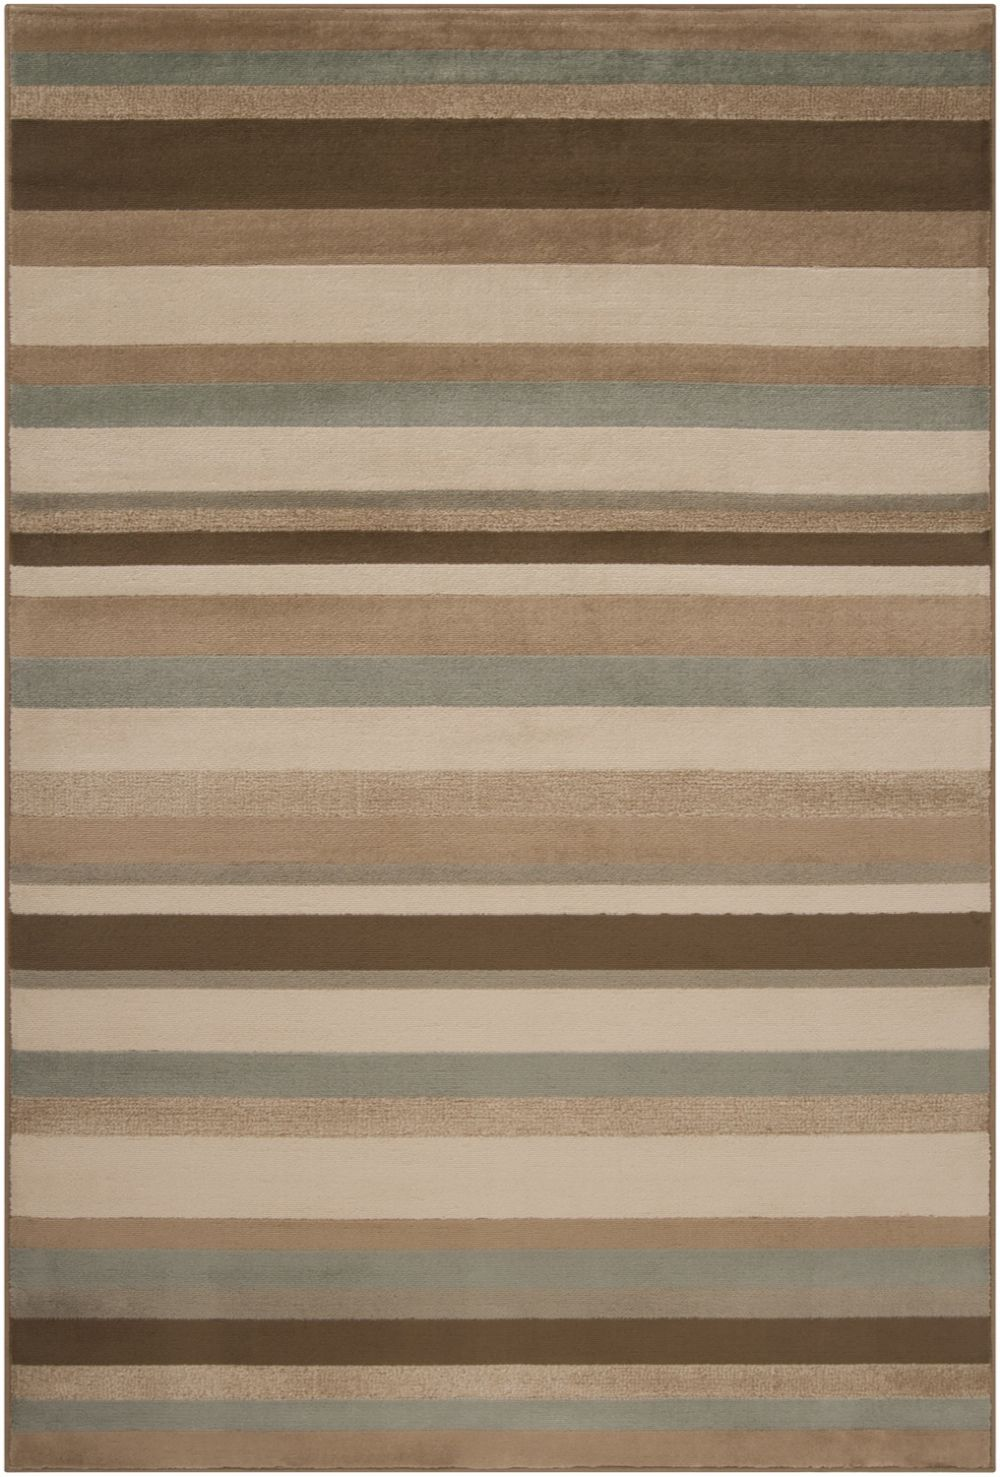 surya paramount solid/striped area rug collection